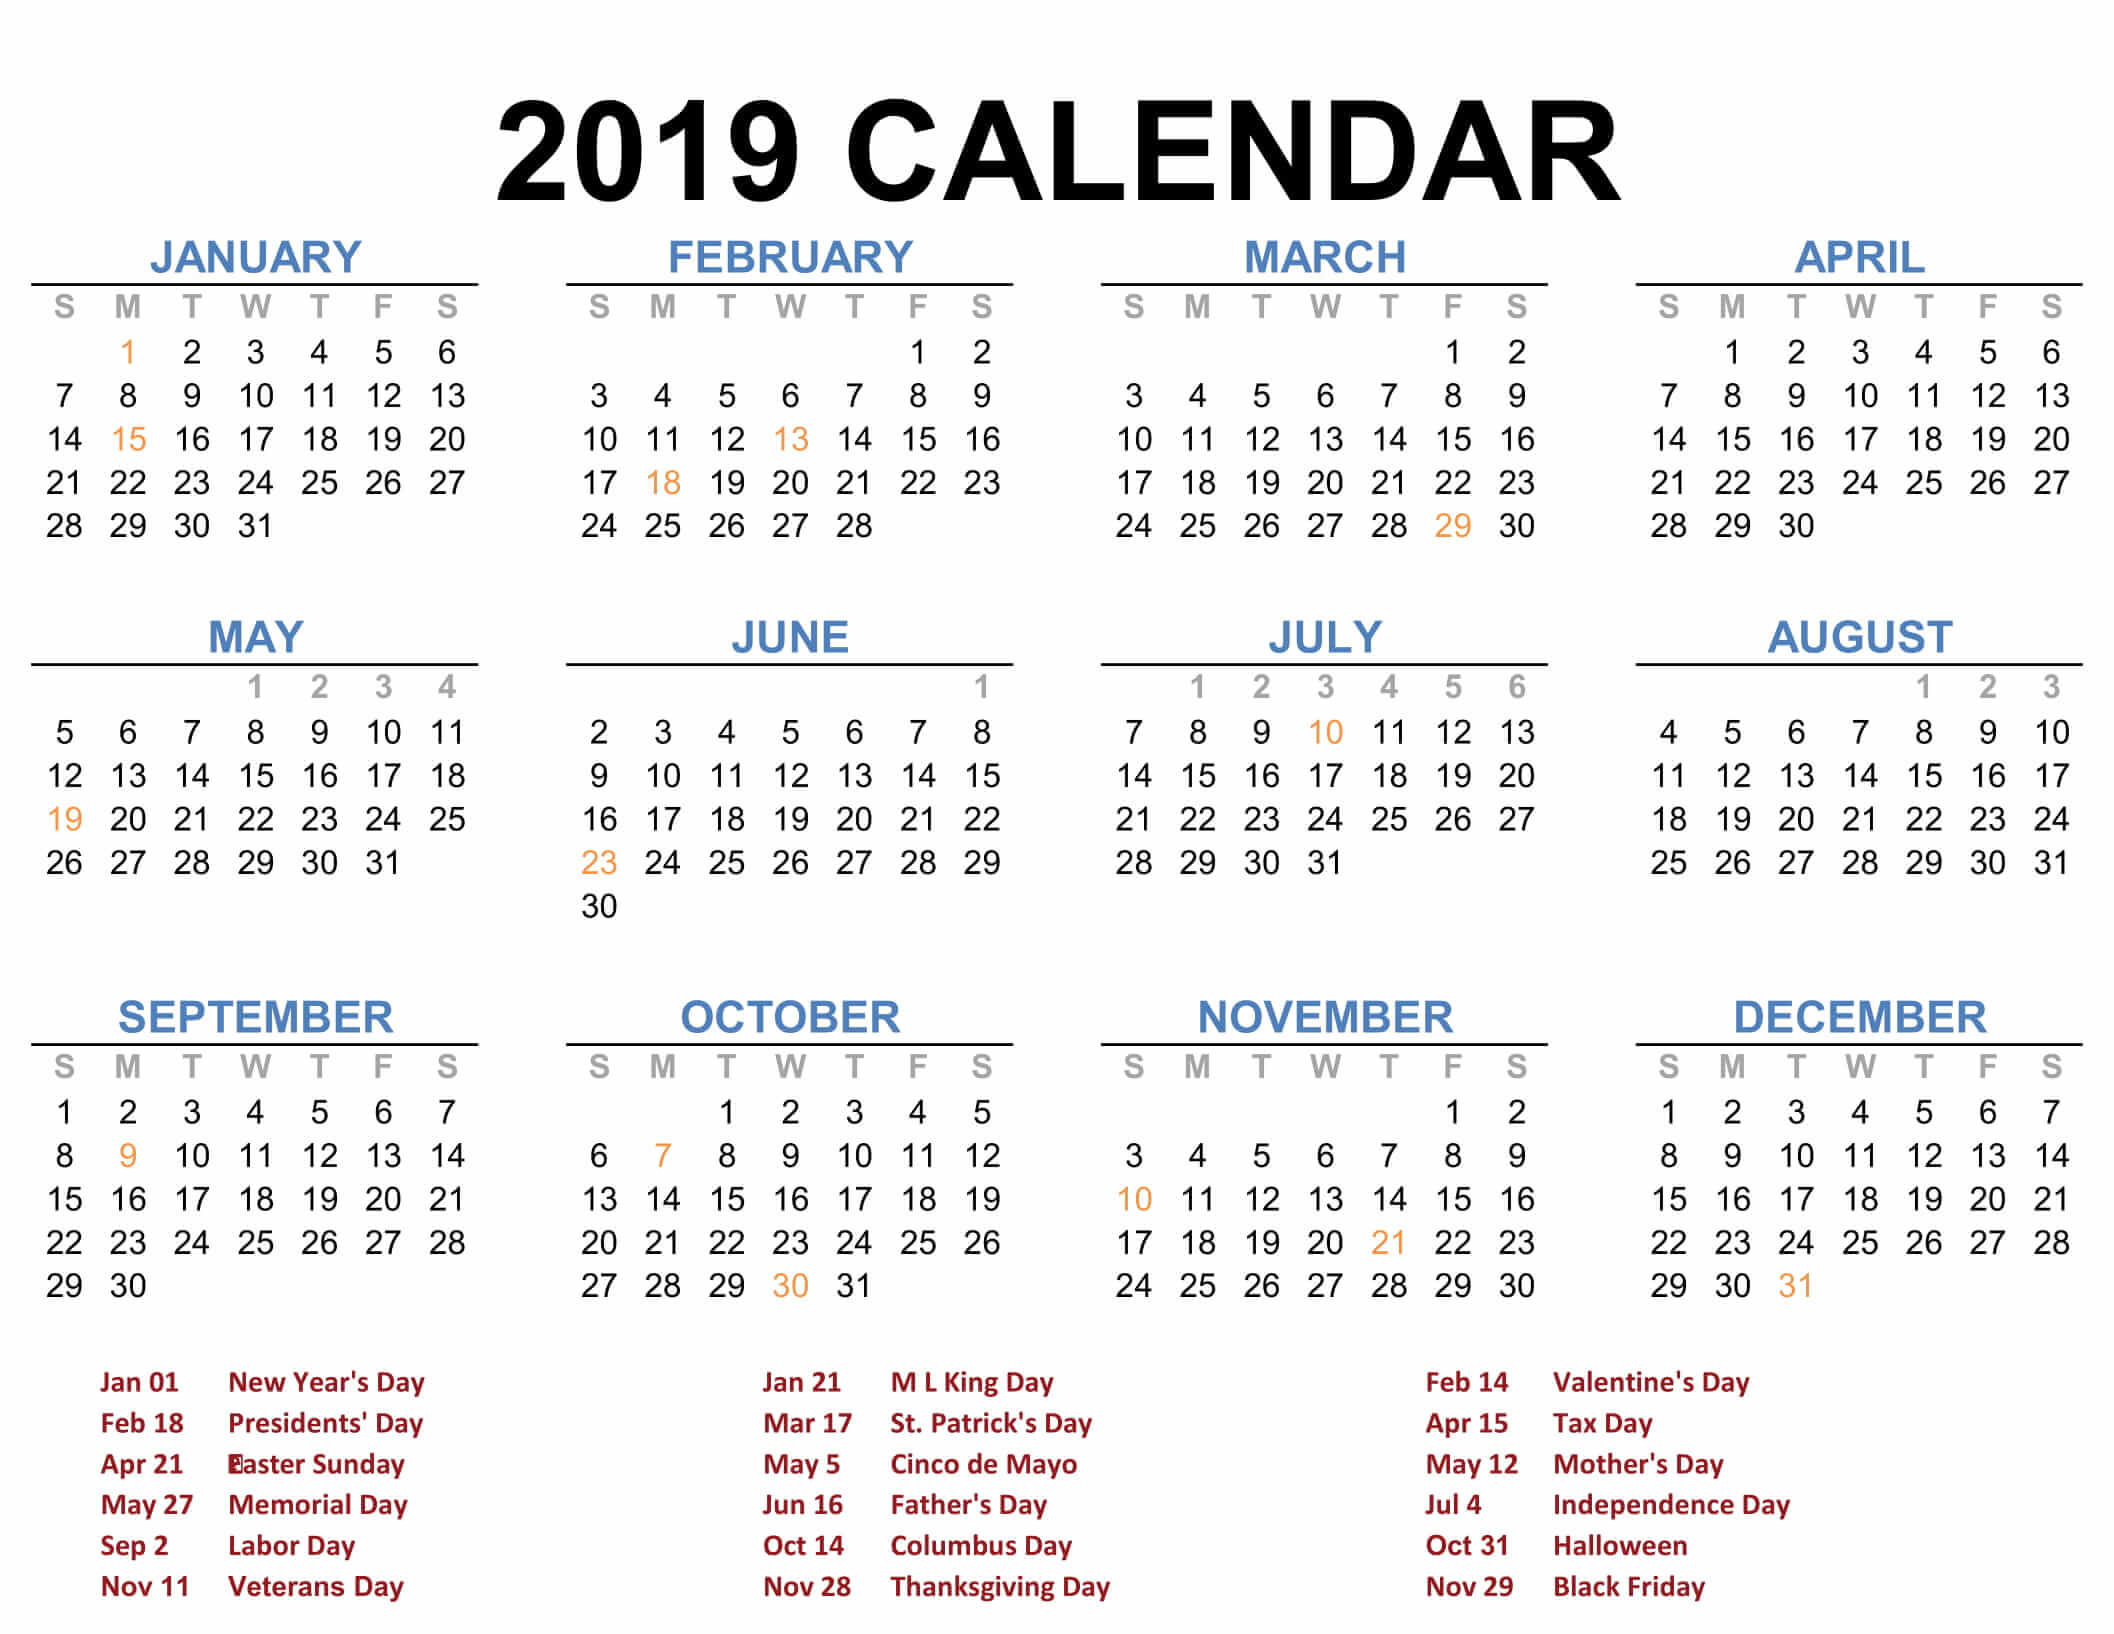 2019 Full Year Calendar Template With Printable Blank Templates Calenndar Com